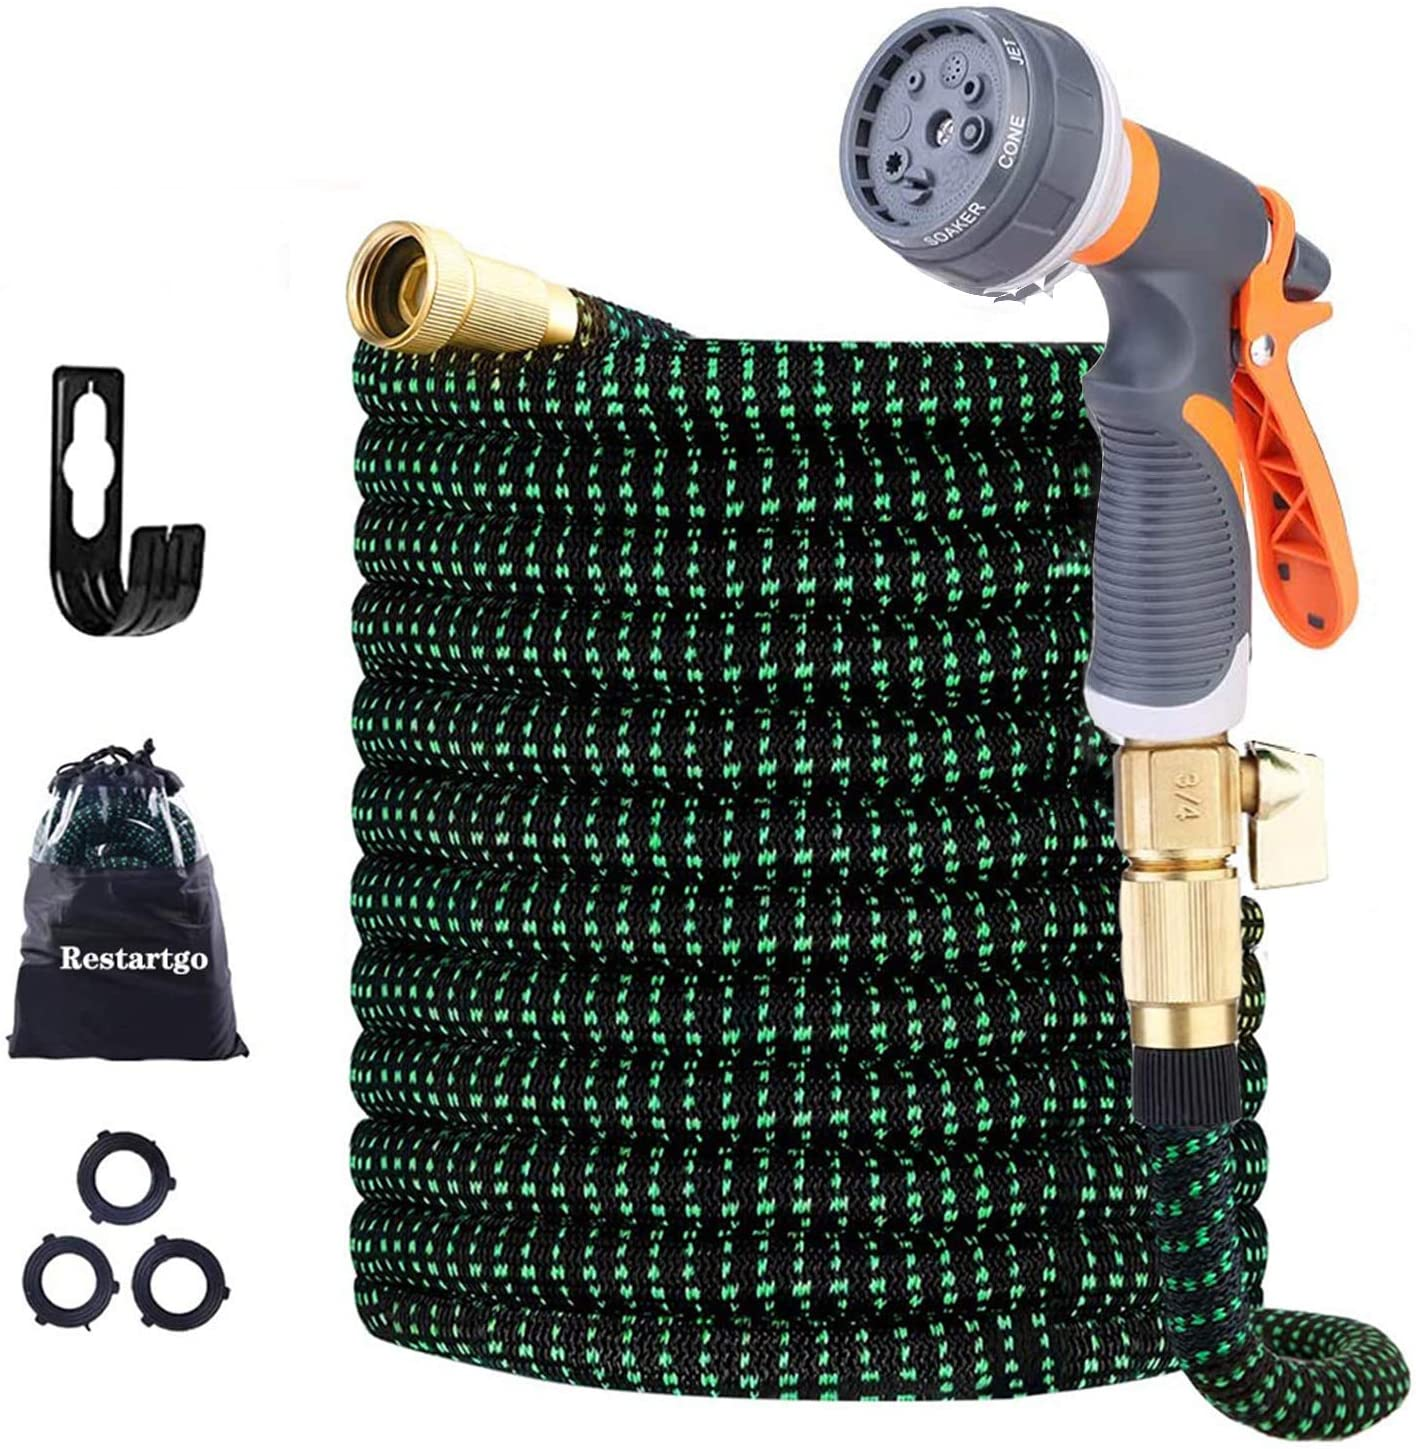 50 ft Expandable Garden Hose,50 Feet Leakproof Lightweight Garden Water Hose with Spray Nozzle,Superior Strength 3750D Expanding Garden Hoses,Durable Outdoor Gardening Flexible Hose for Watering